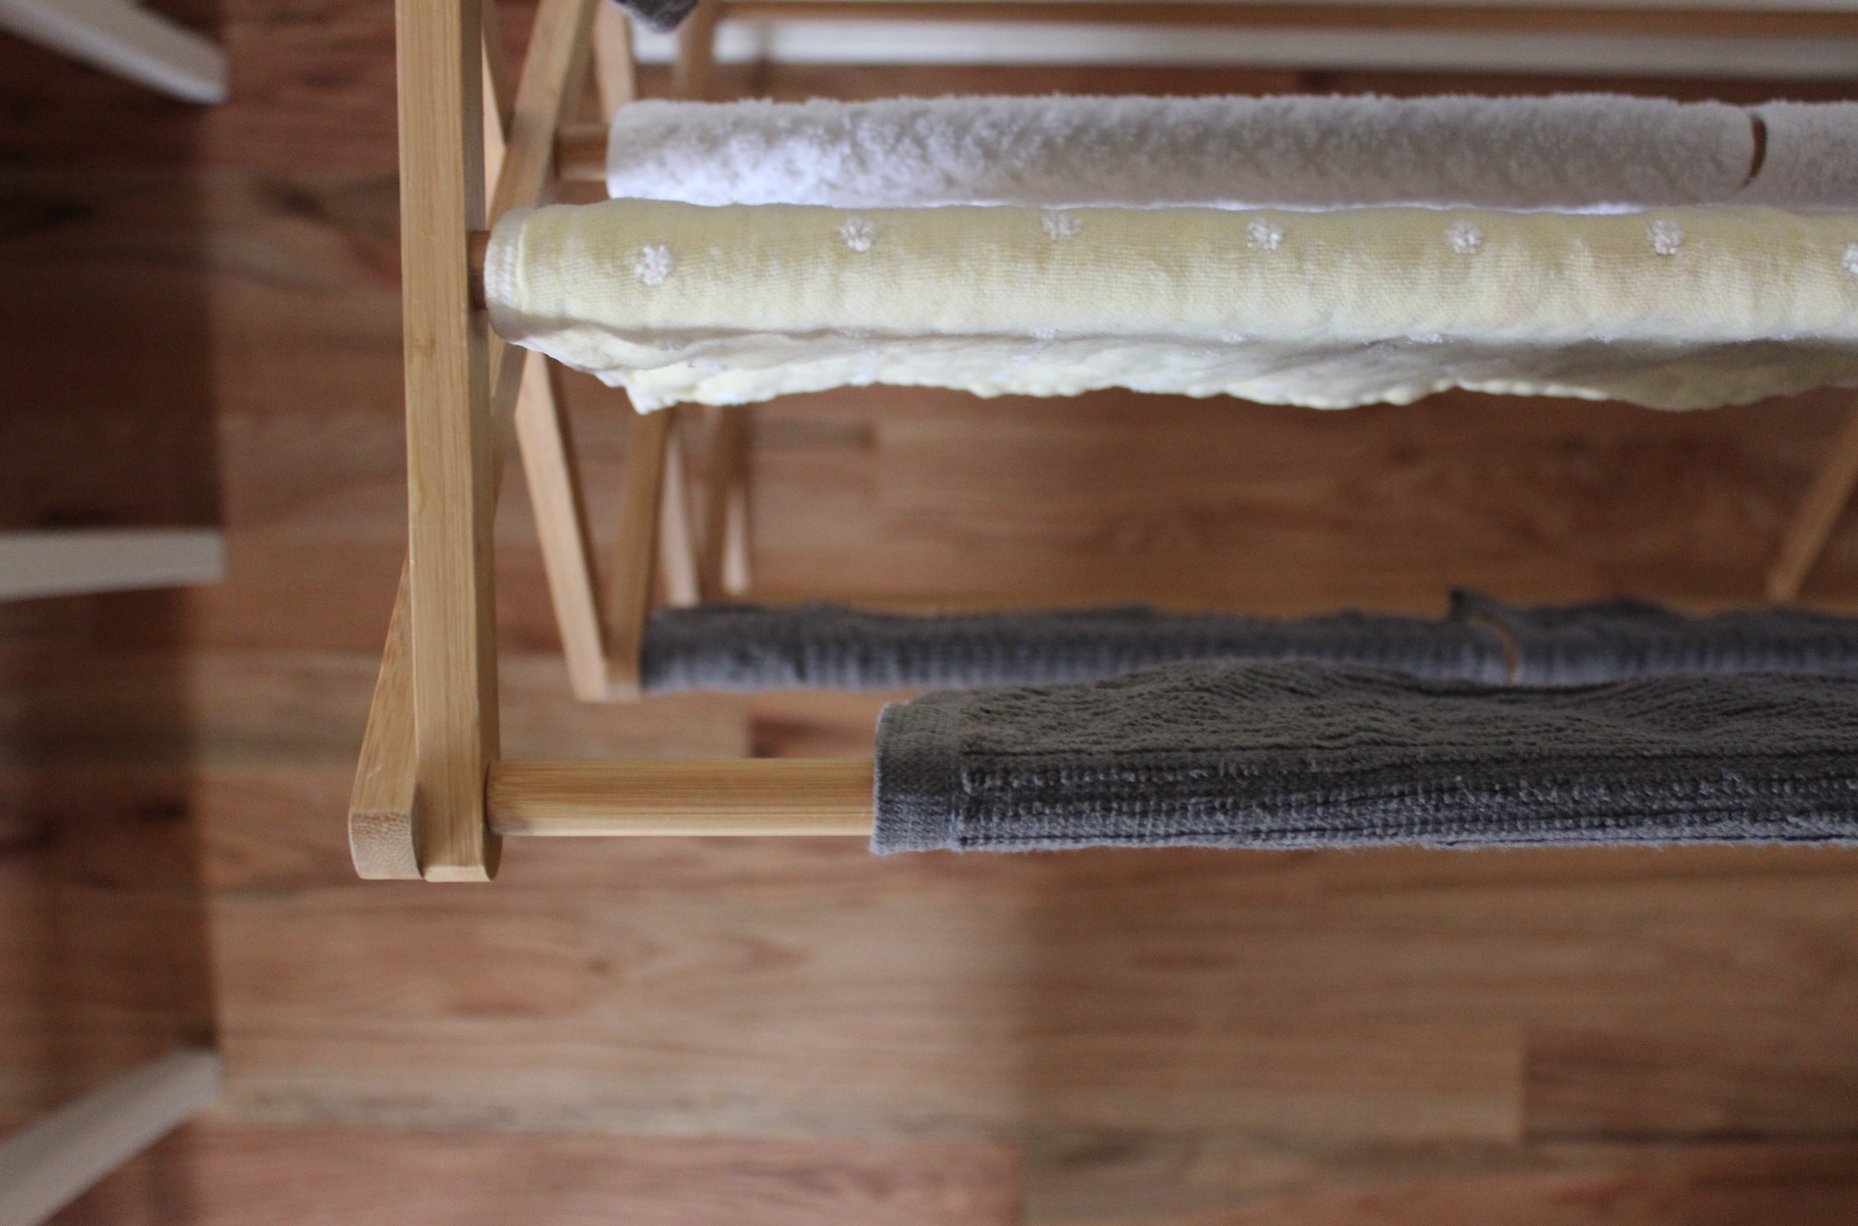 Cleaning without paper towels in a zero waste home | Litterless